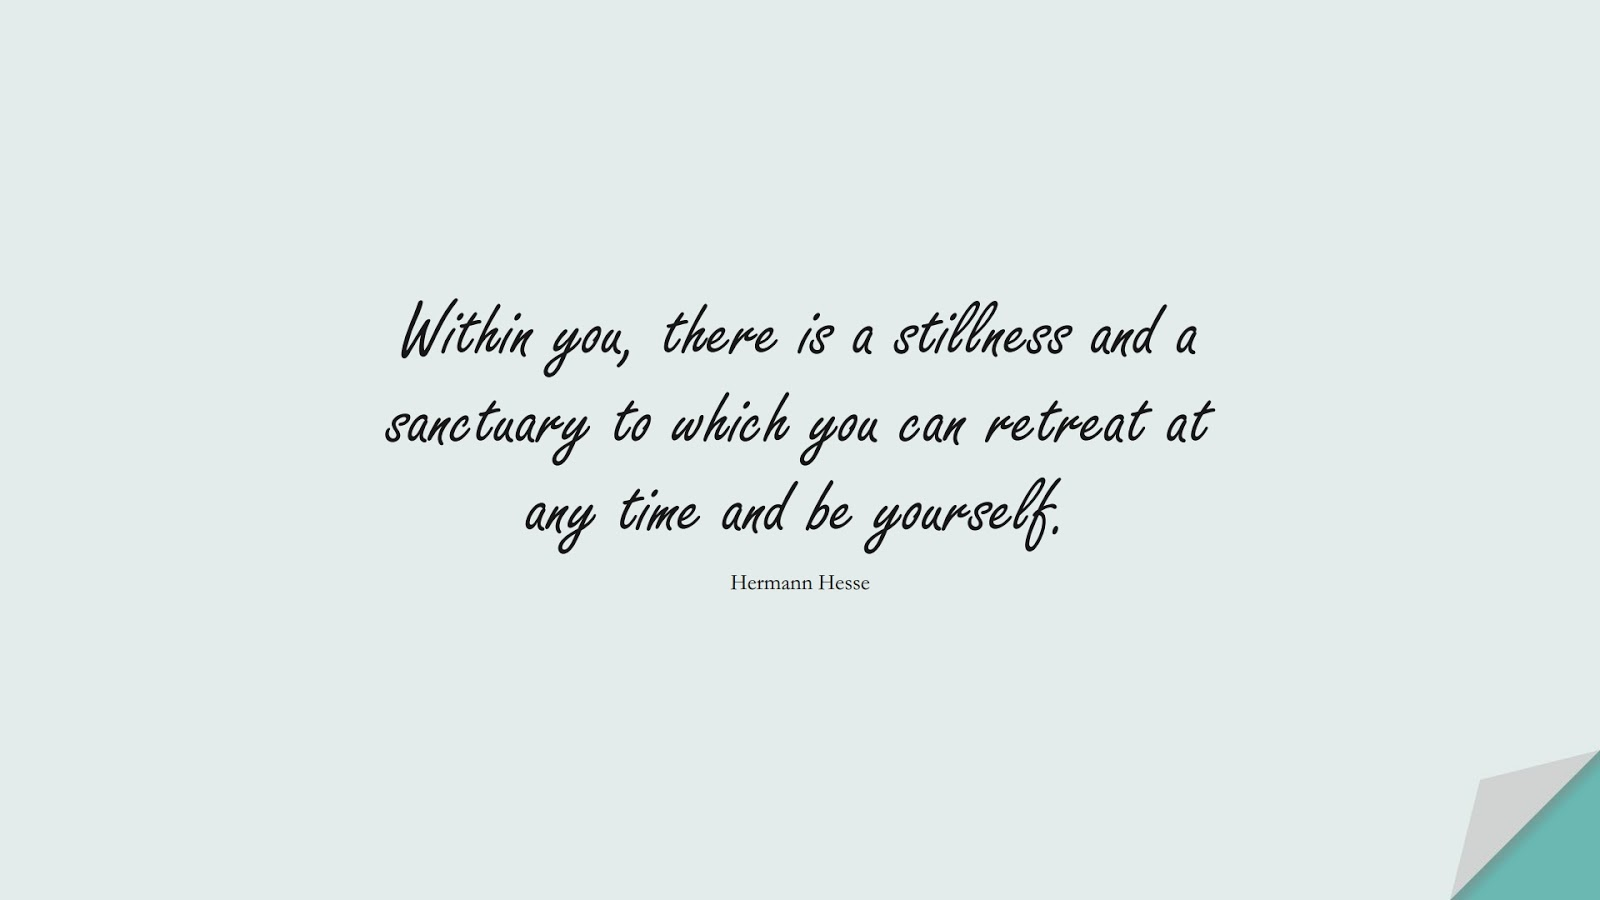 Within you, there is a stillness and a sanctuary to which you can retreat at any time and be yourself. (Hermann Hesse);  #StressQuotes